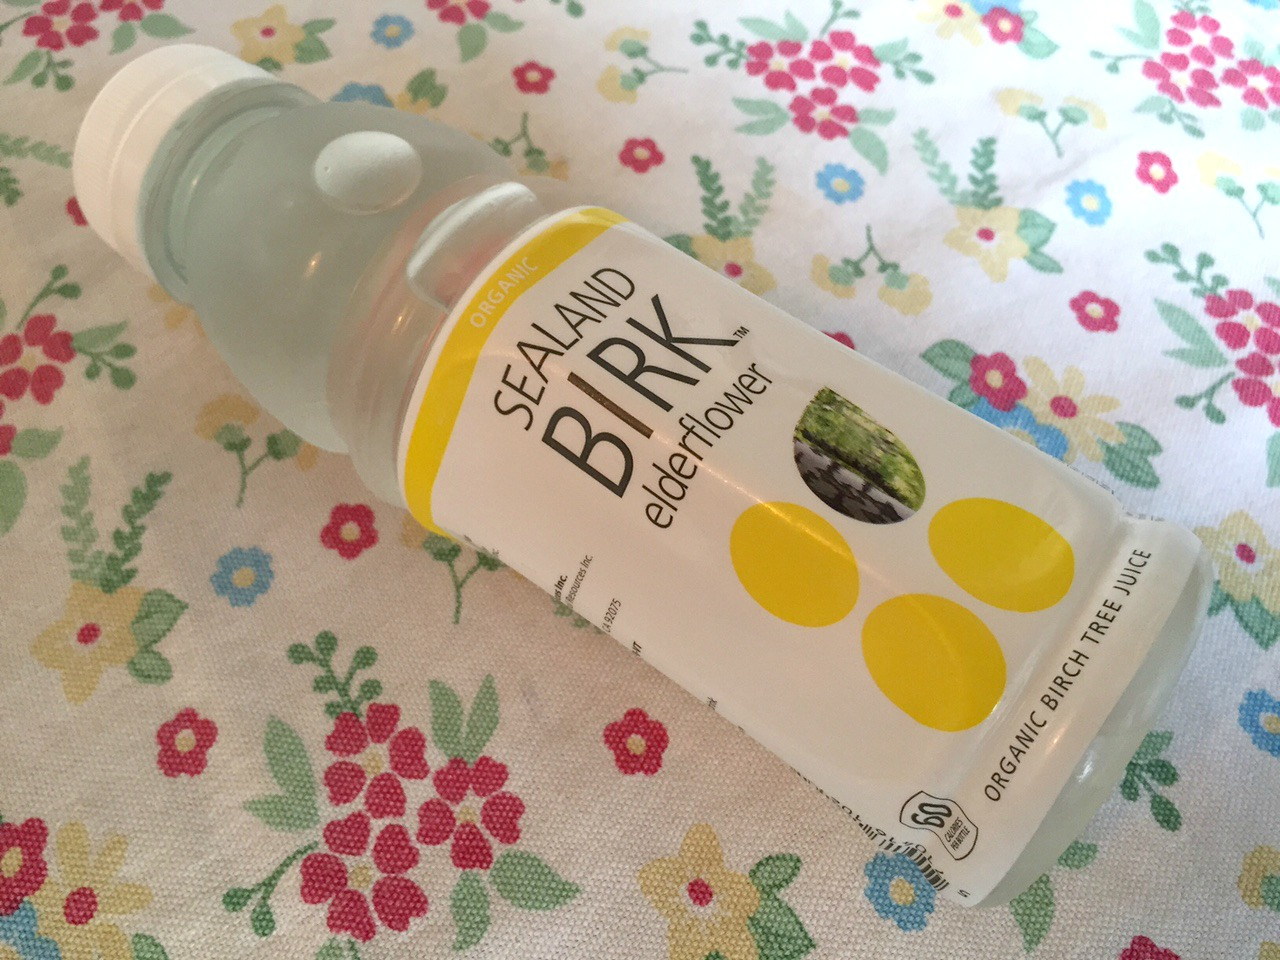 Sealand Birk Elderflower Birch Water